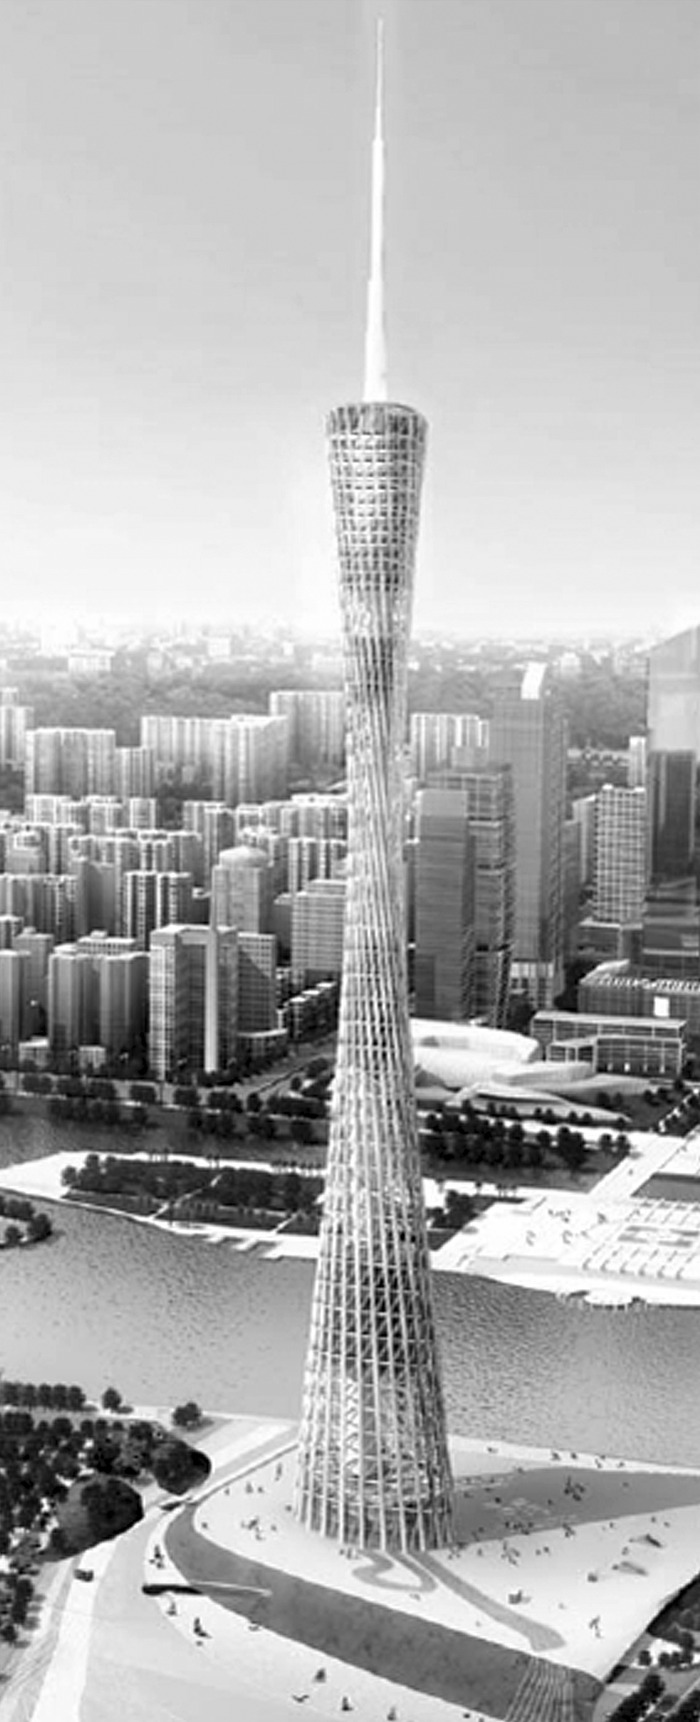 Guangzhou New Television Tower. (With permission from John Wiley & Sons Ltd.)